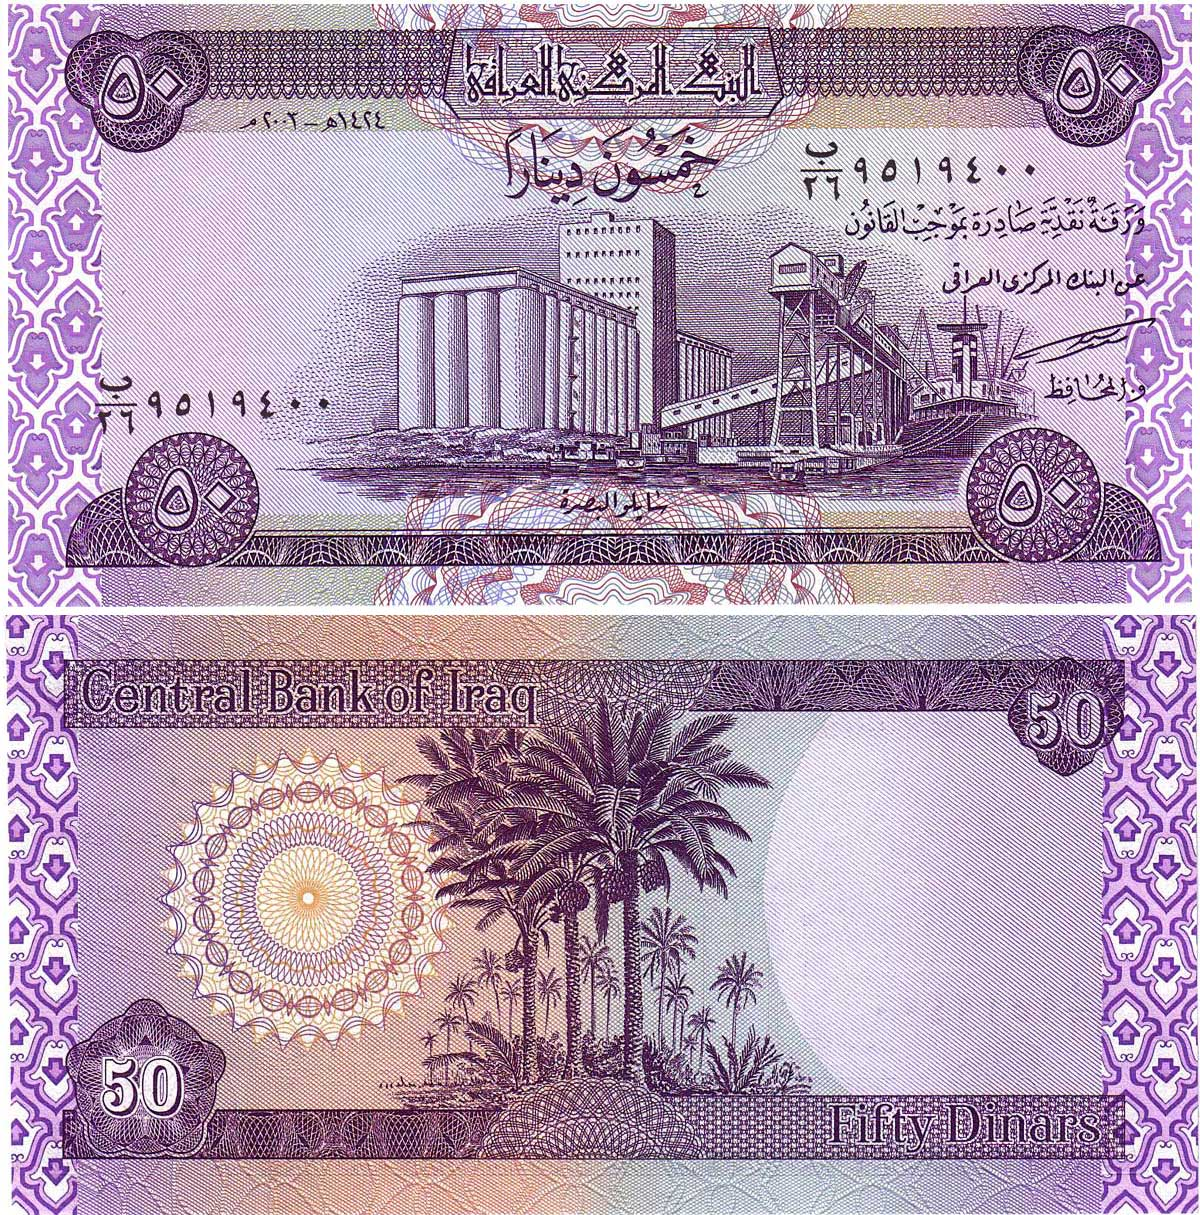 currency swap with iraq to fund their government and ministries